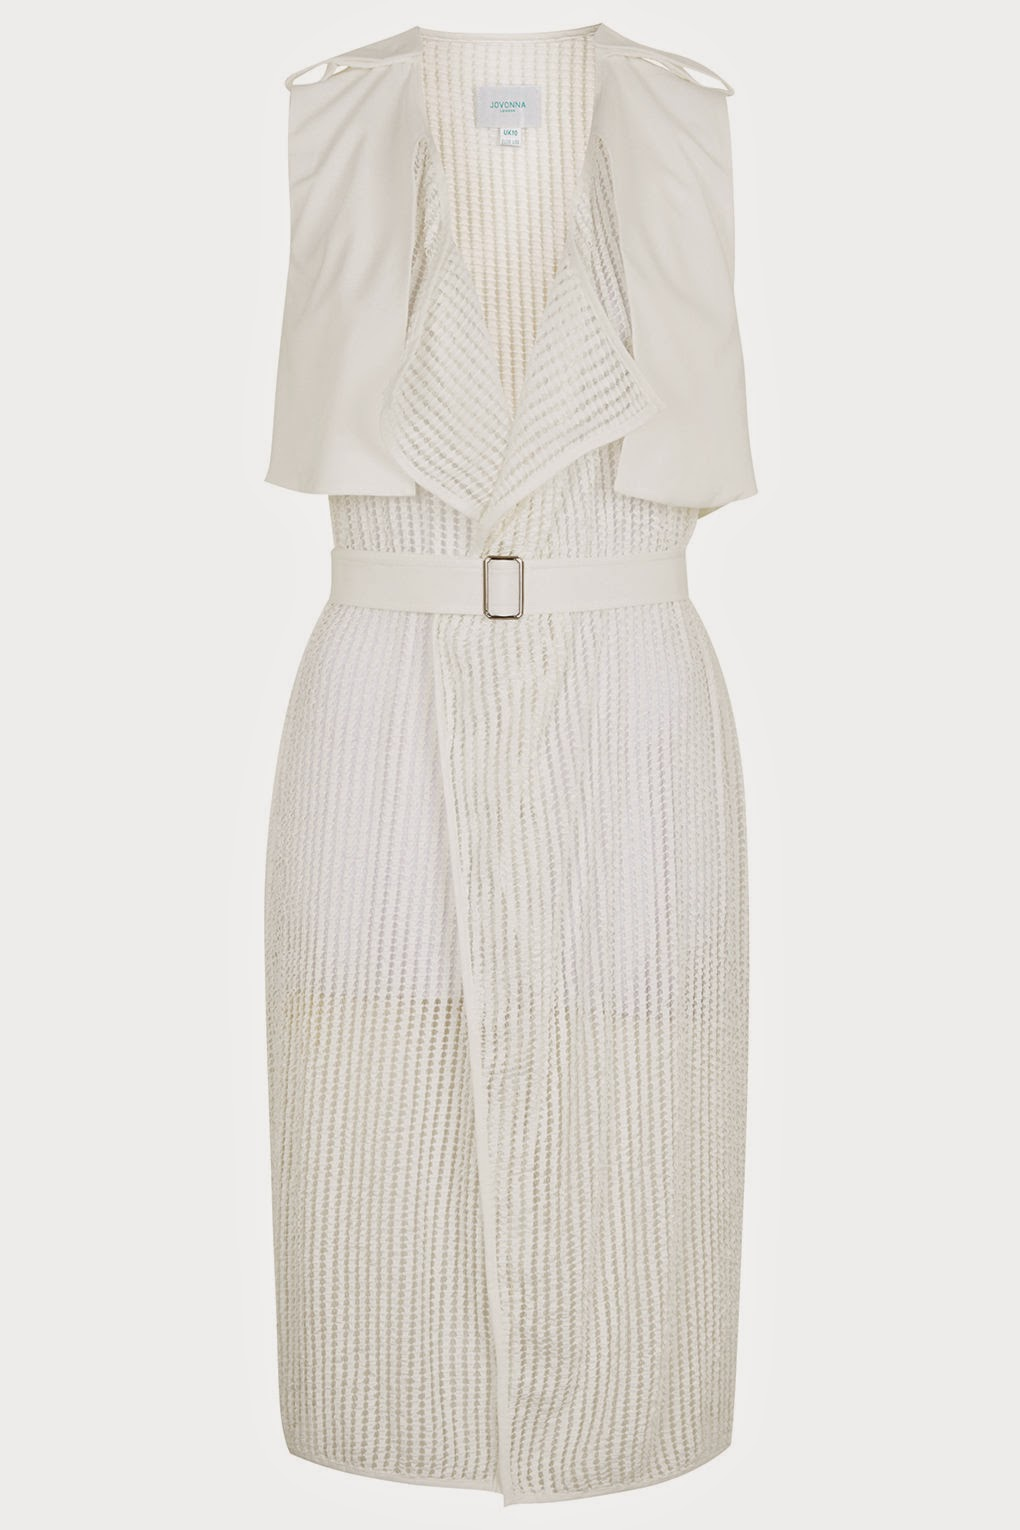 jovonna white dress, white belted dress topshop, white belted dress,